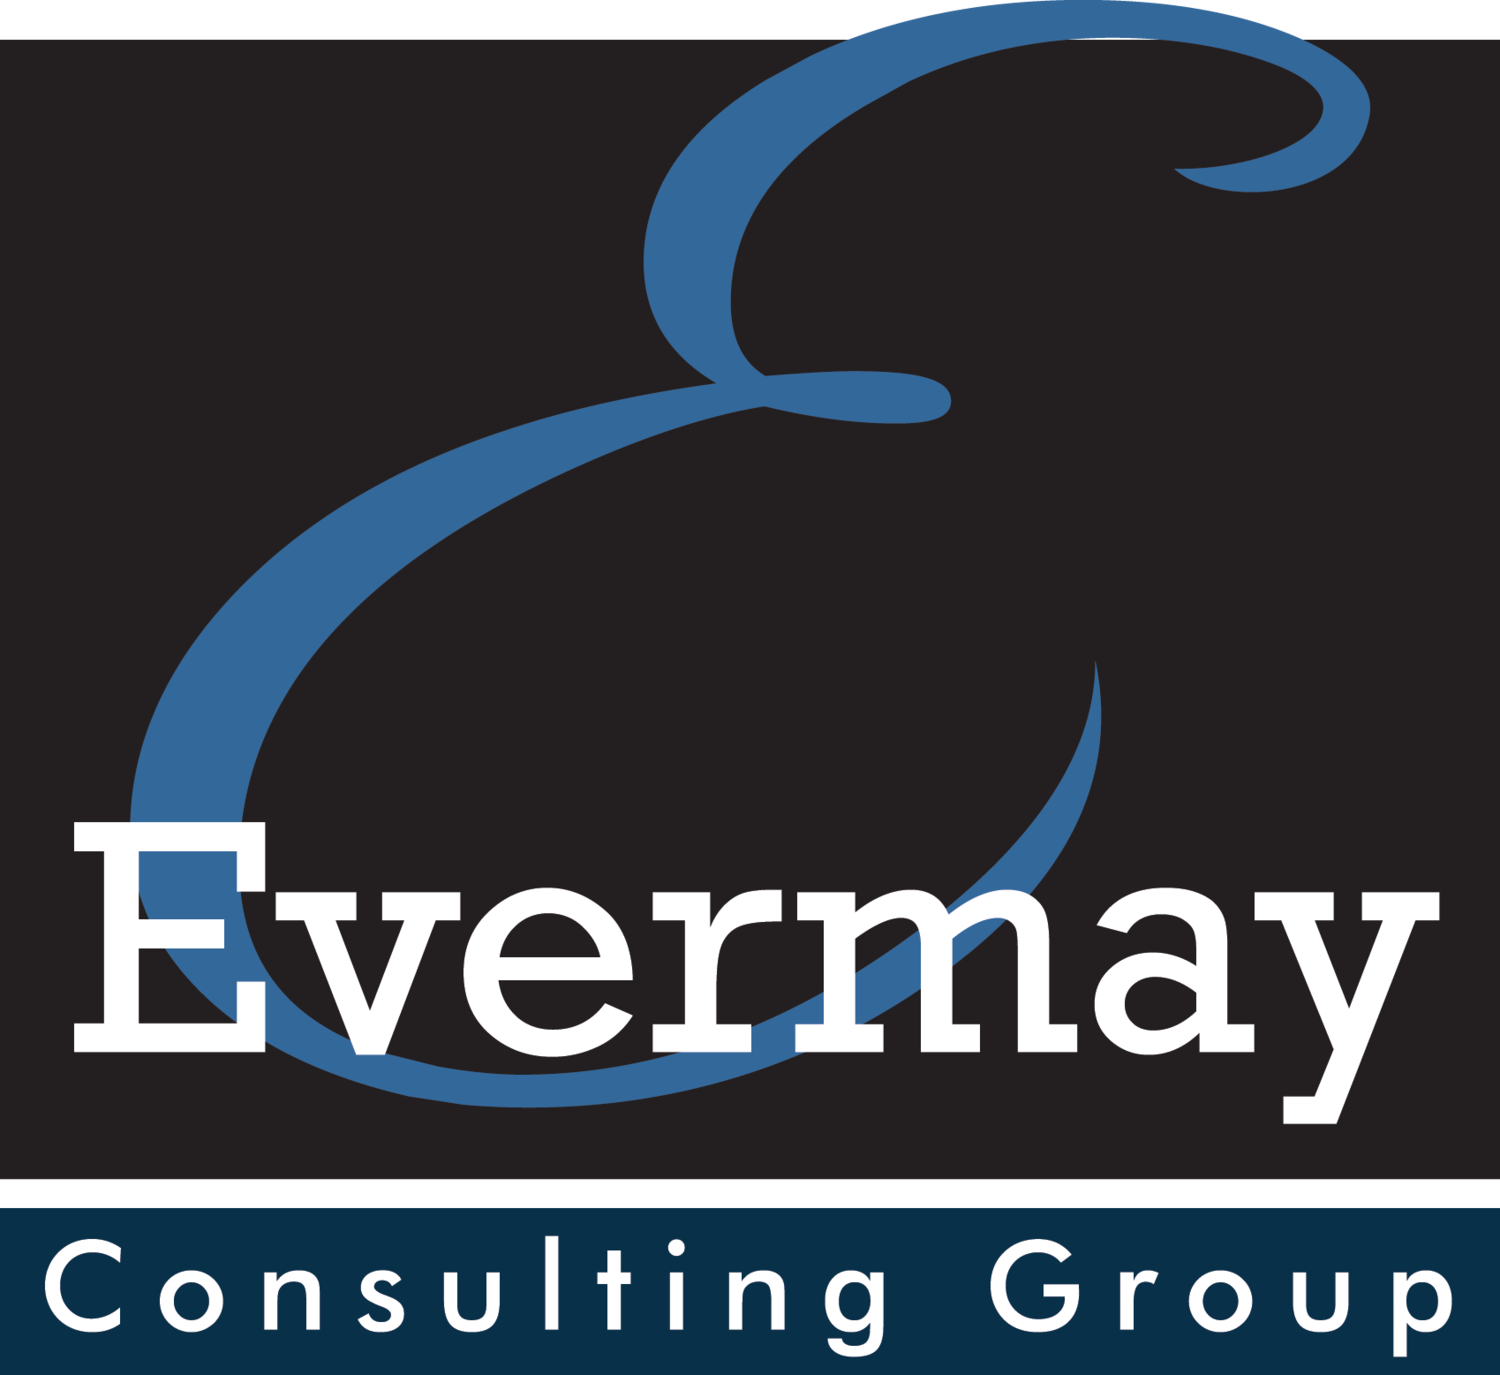 Evermay Consulting Group